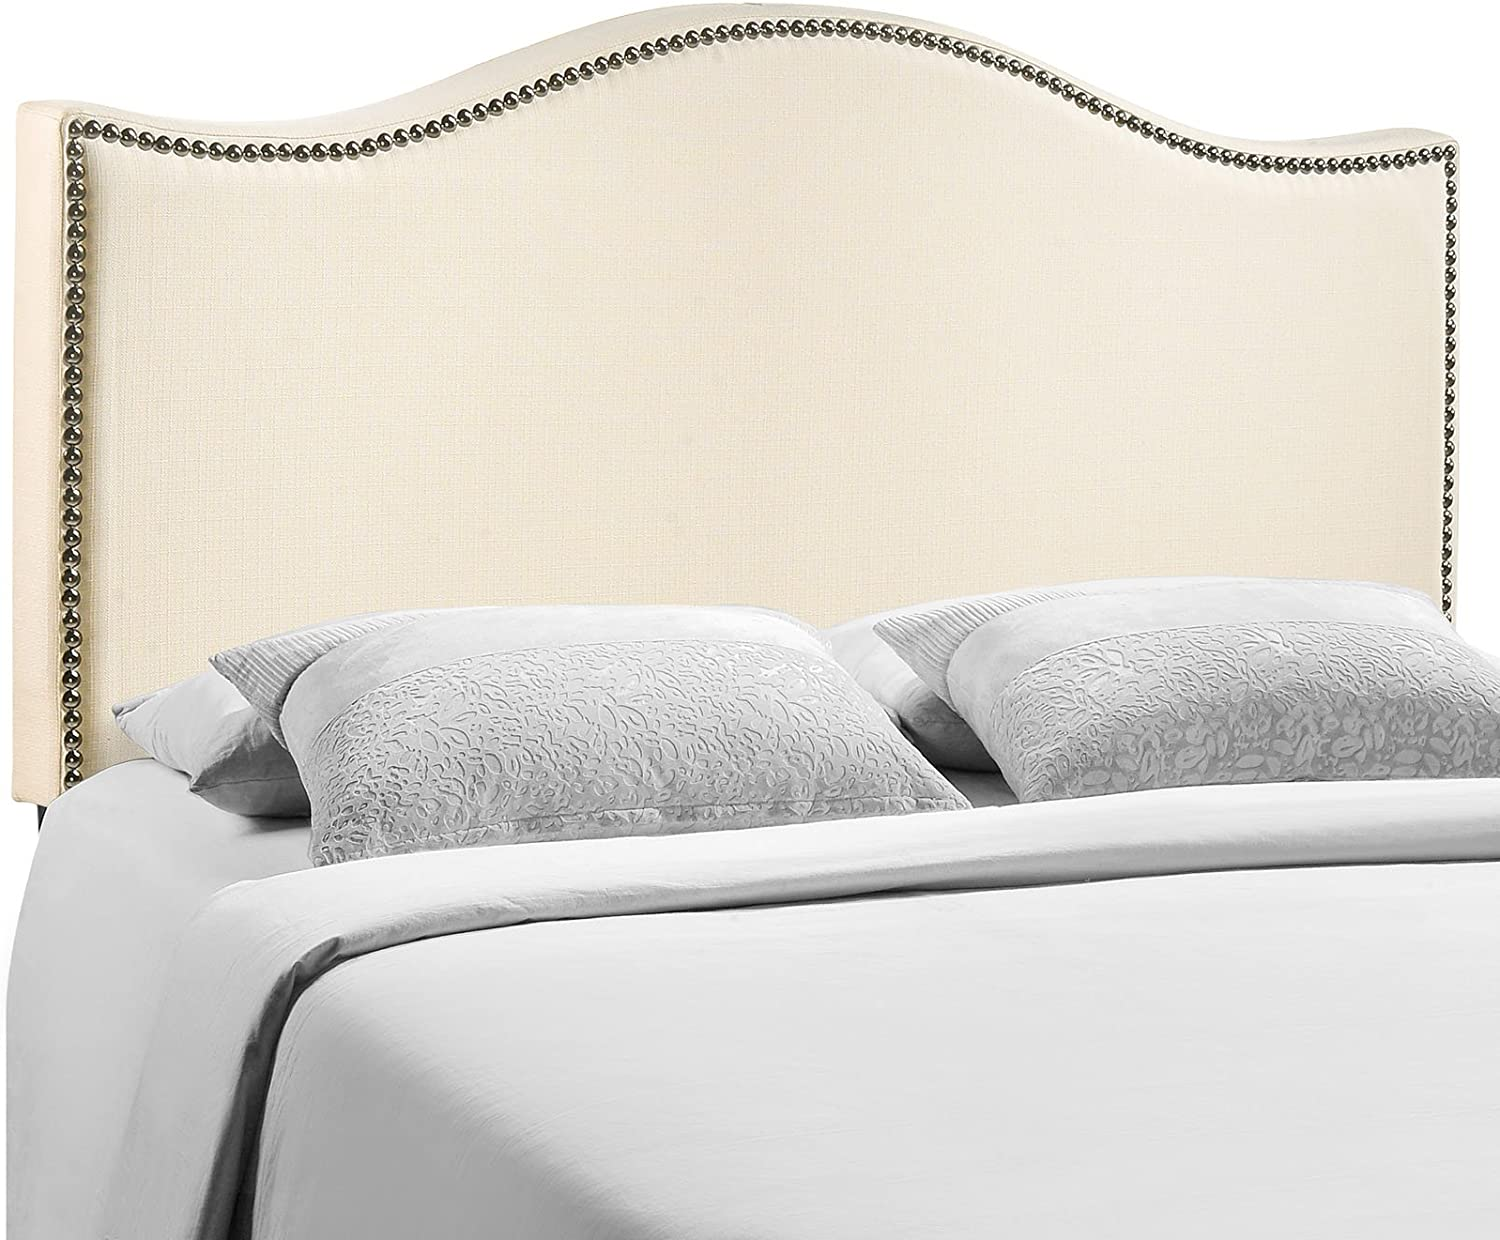 Modway Curl Nailhead Upholstered Headboard, Queen, Ivory